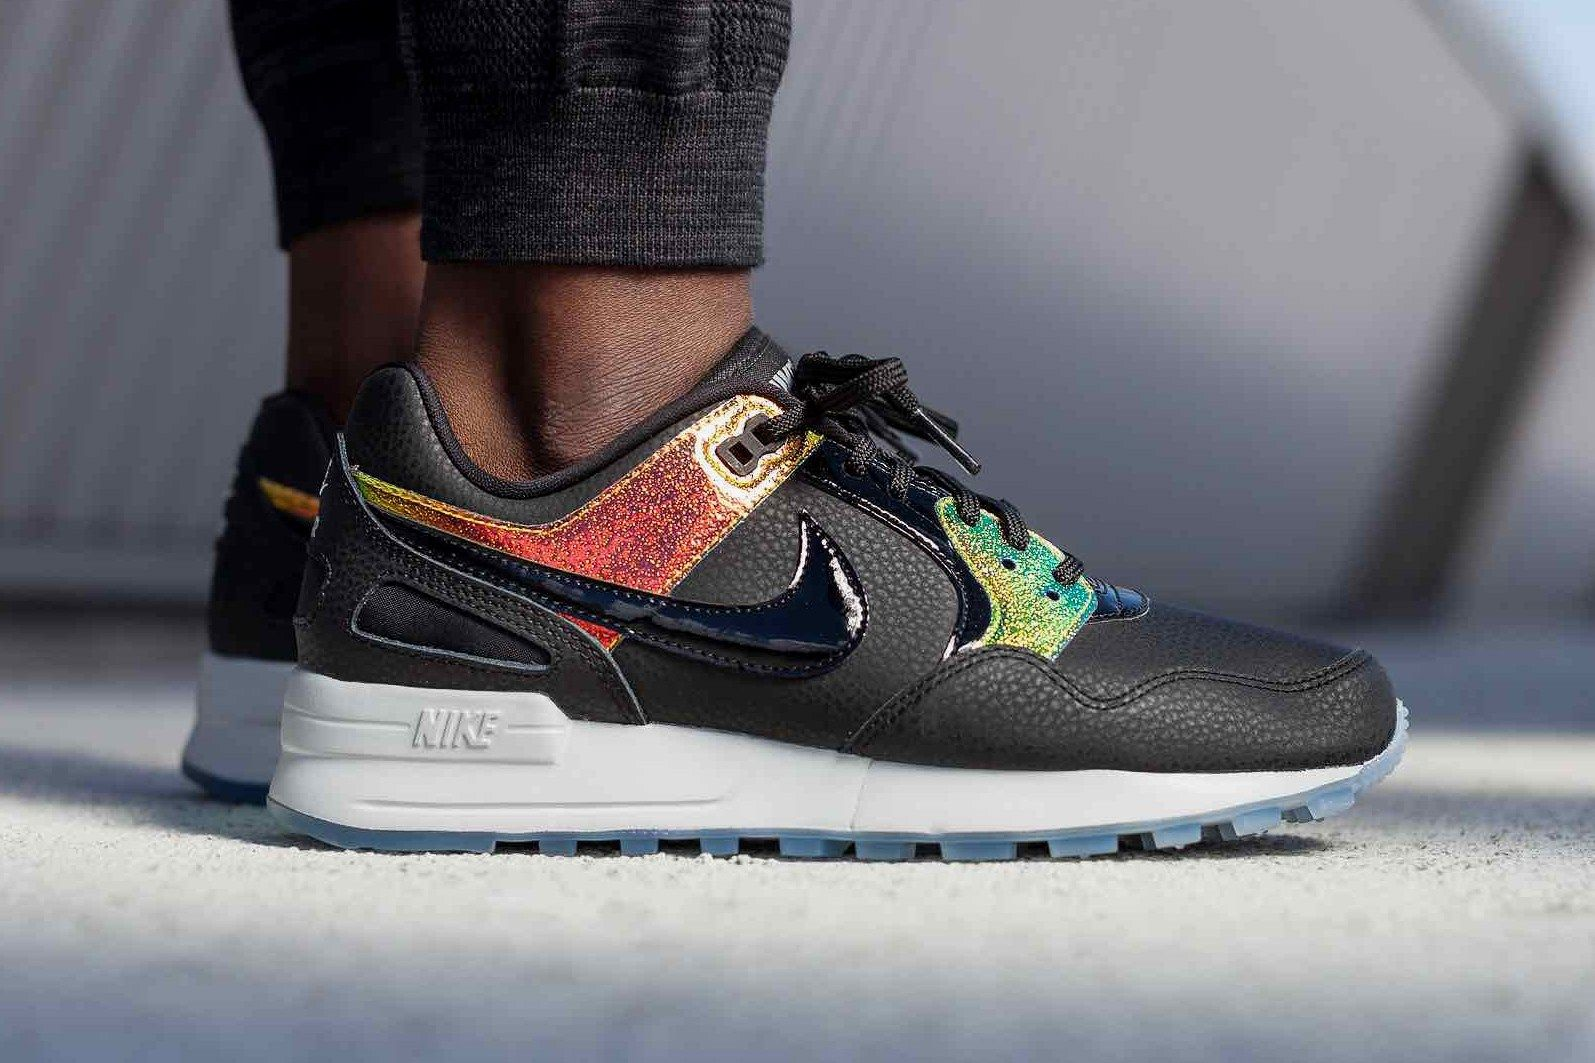 The Nike Air Pegasus '89 Premium